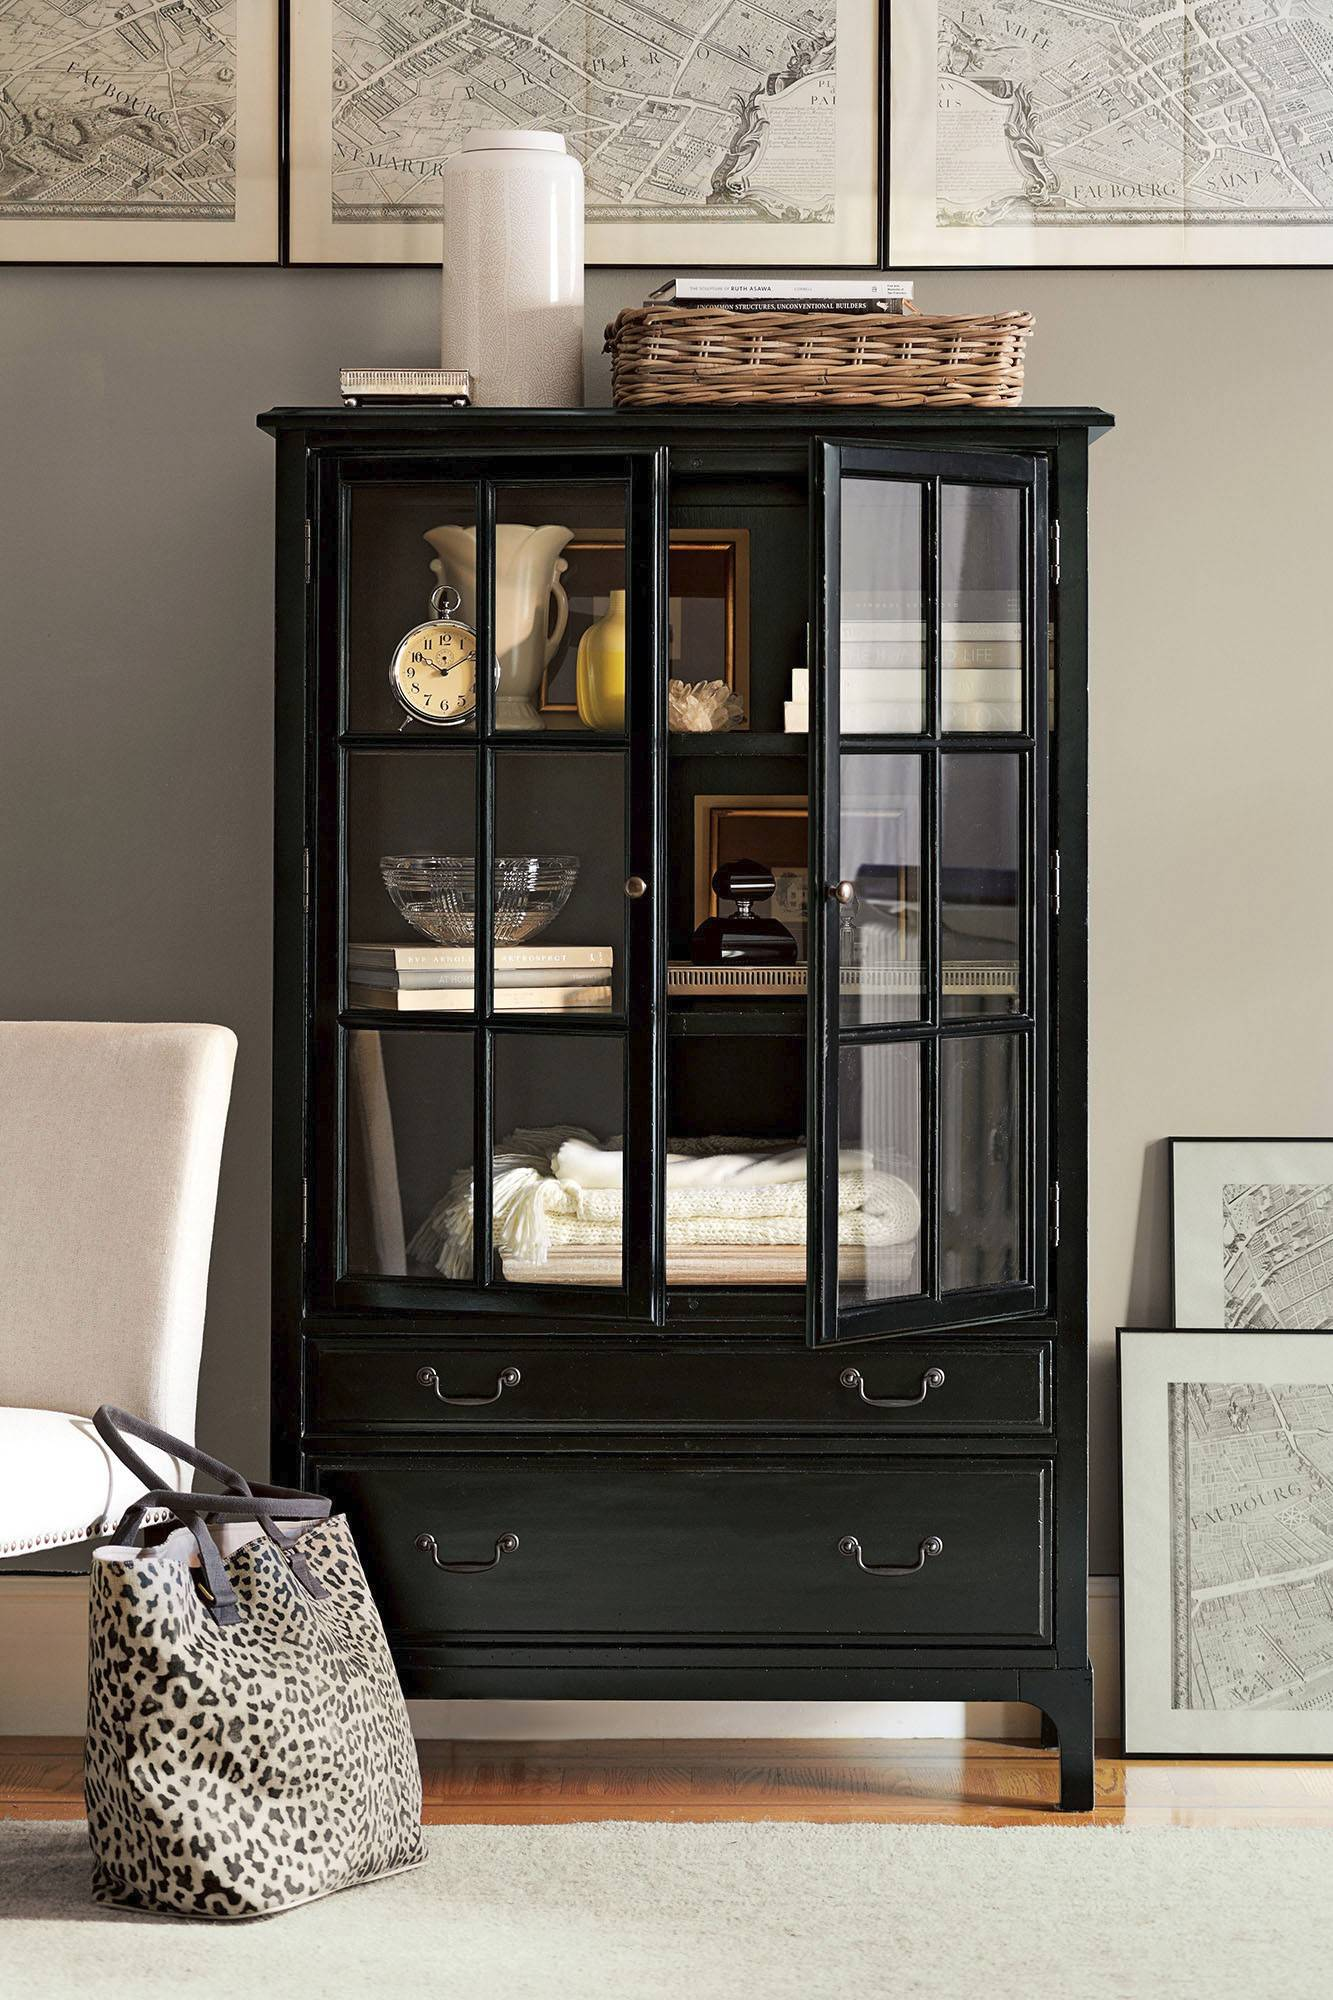 Books that are collectibles and need some protection can go in the Bronson bookcase from Pottery Barn.